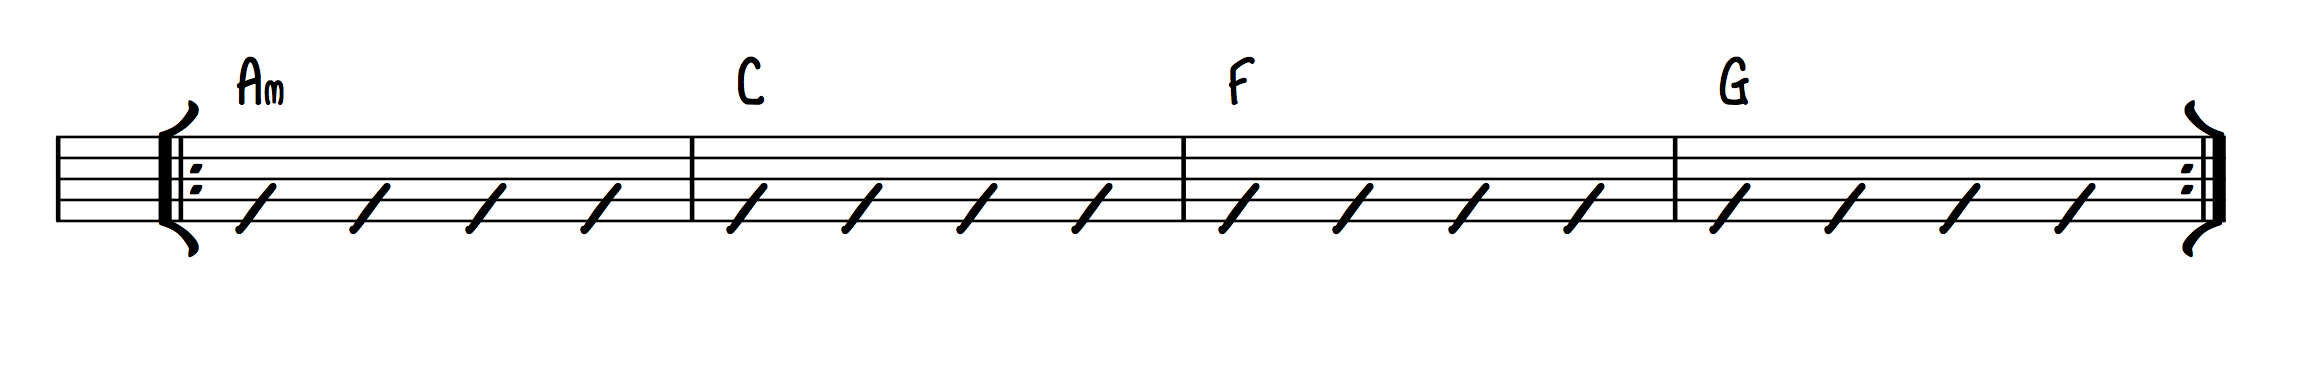 Chord Exercise 1